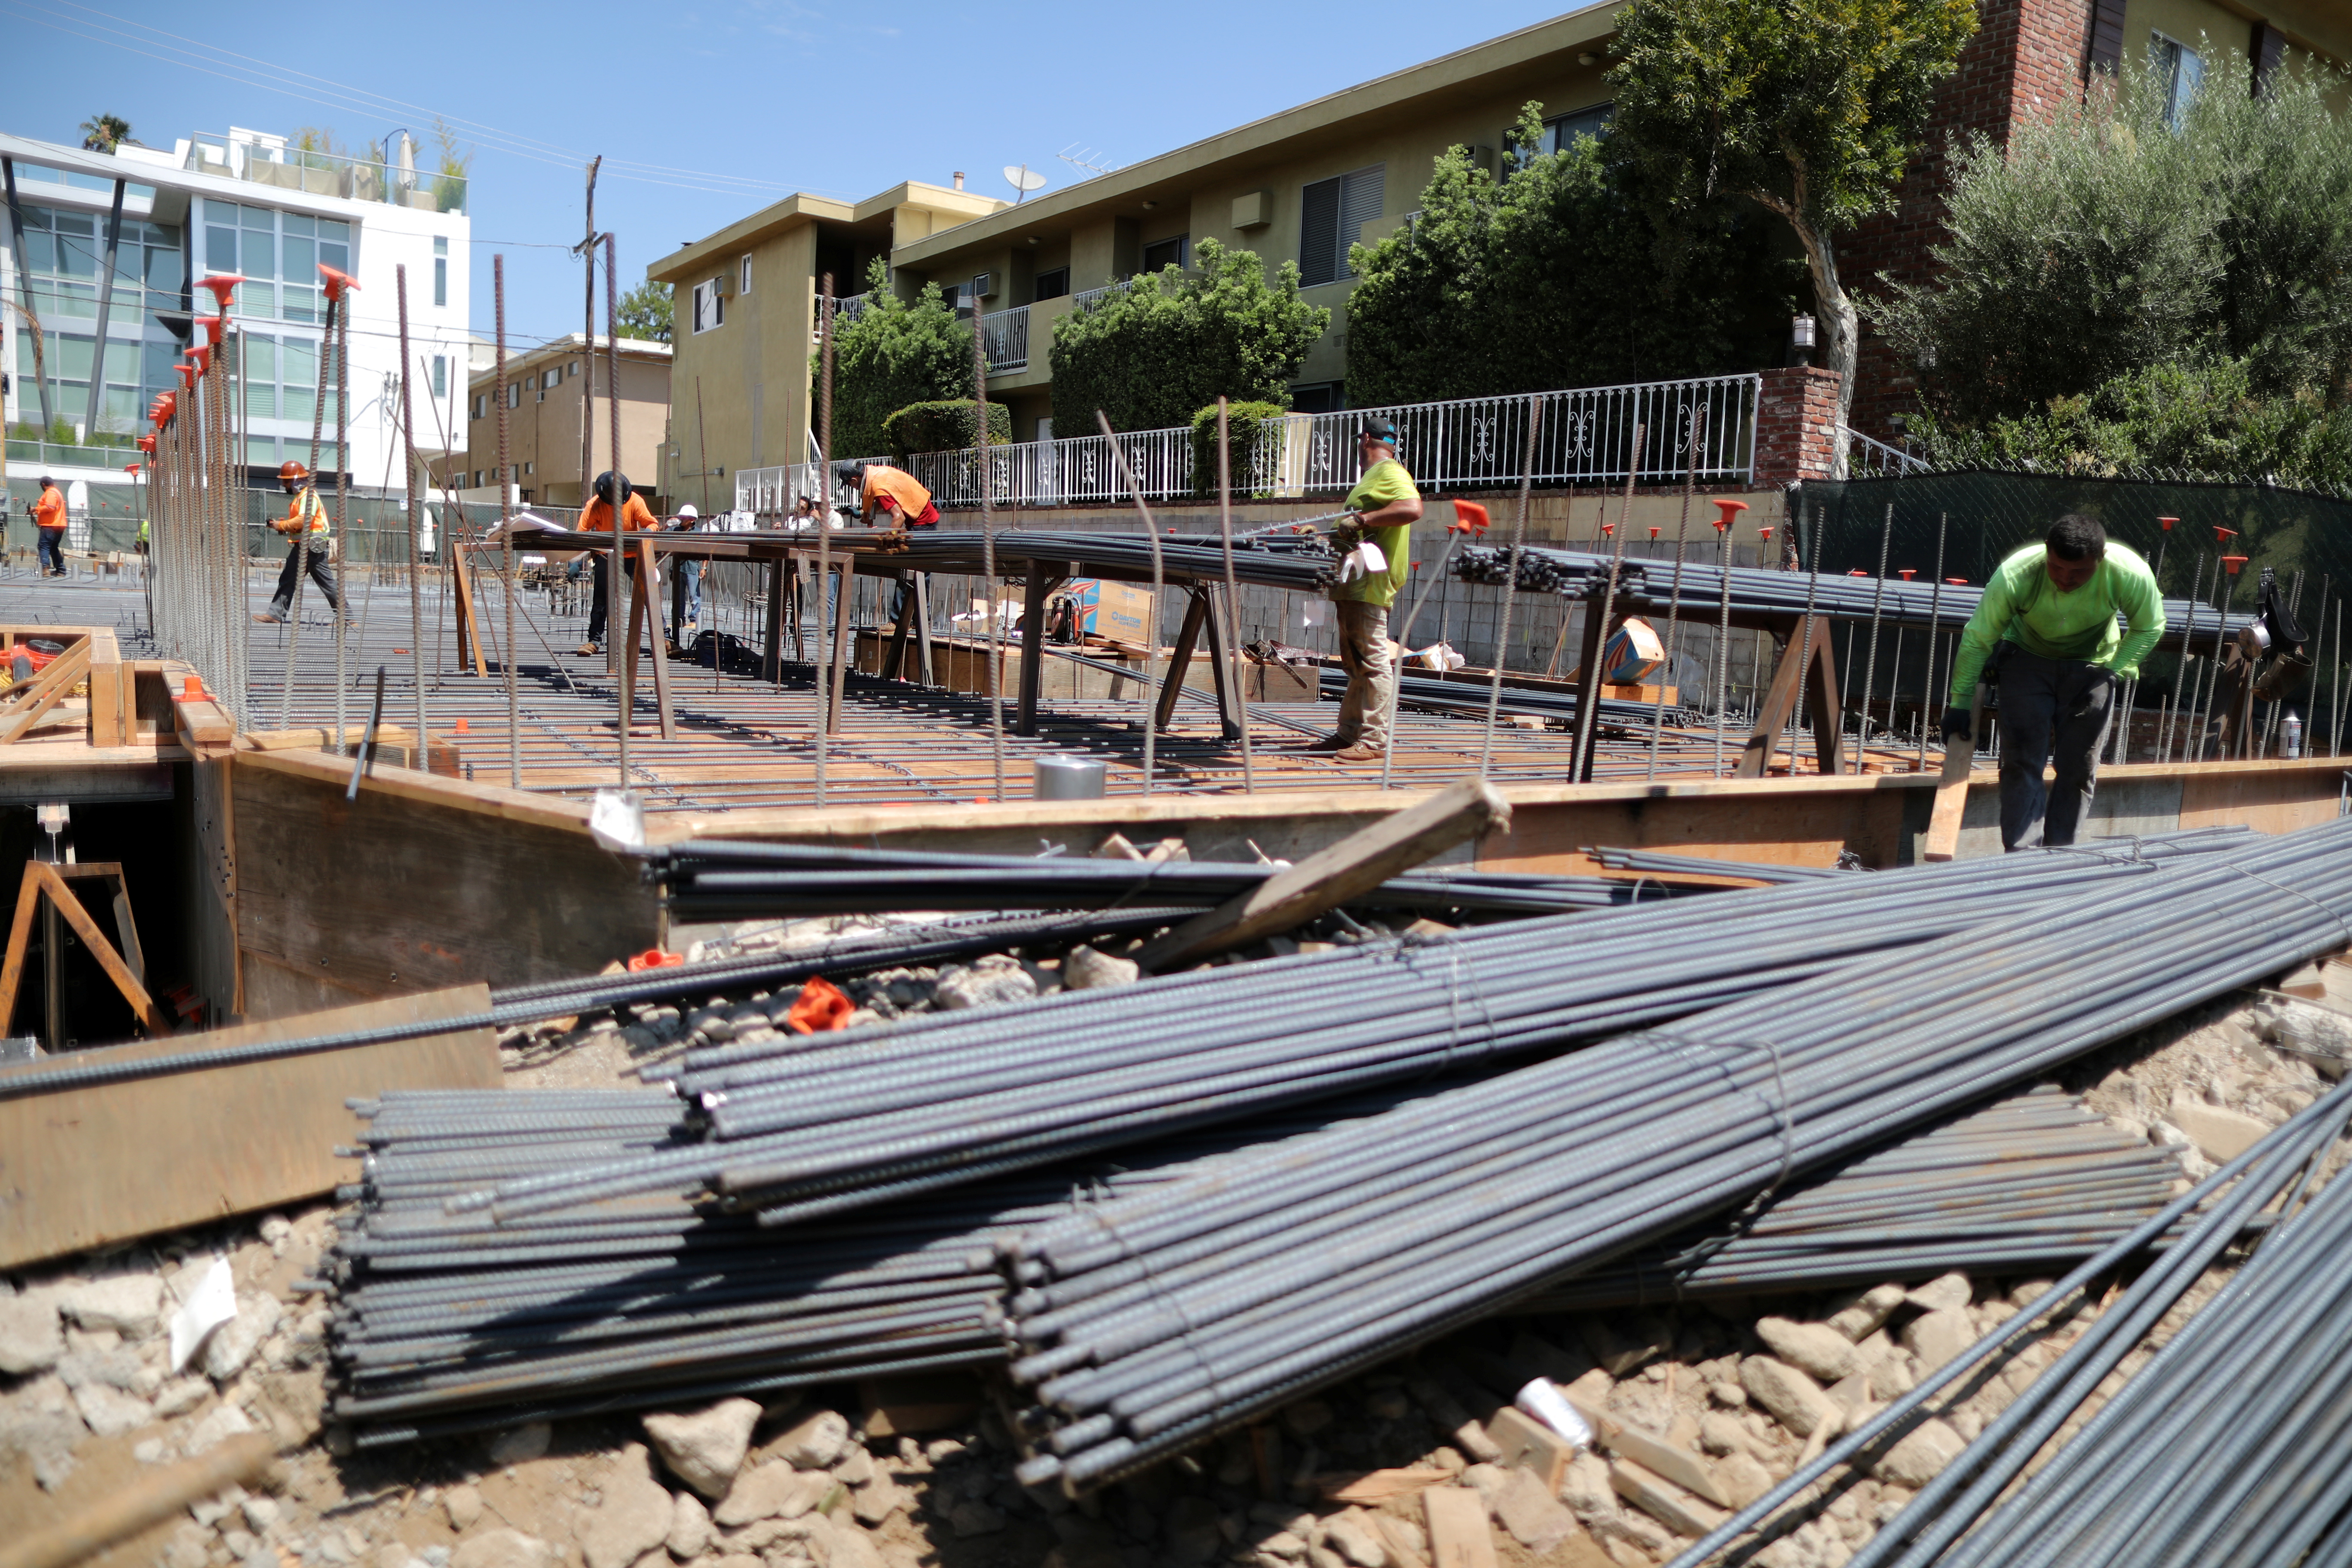 A new apartment building housing construction site is seen in Los Angeles, California, U.S. July 30, 2018. REUTERS/Lucy Nicholson/File Photo